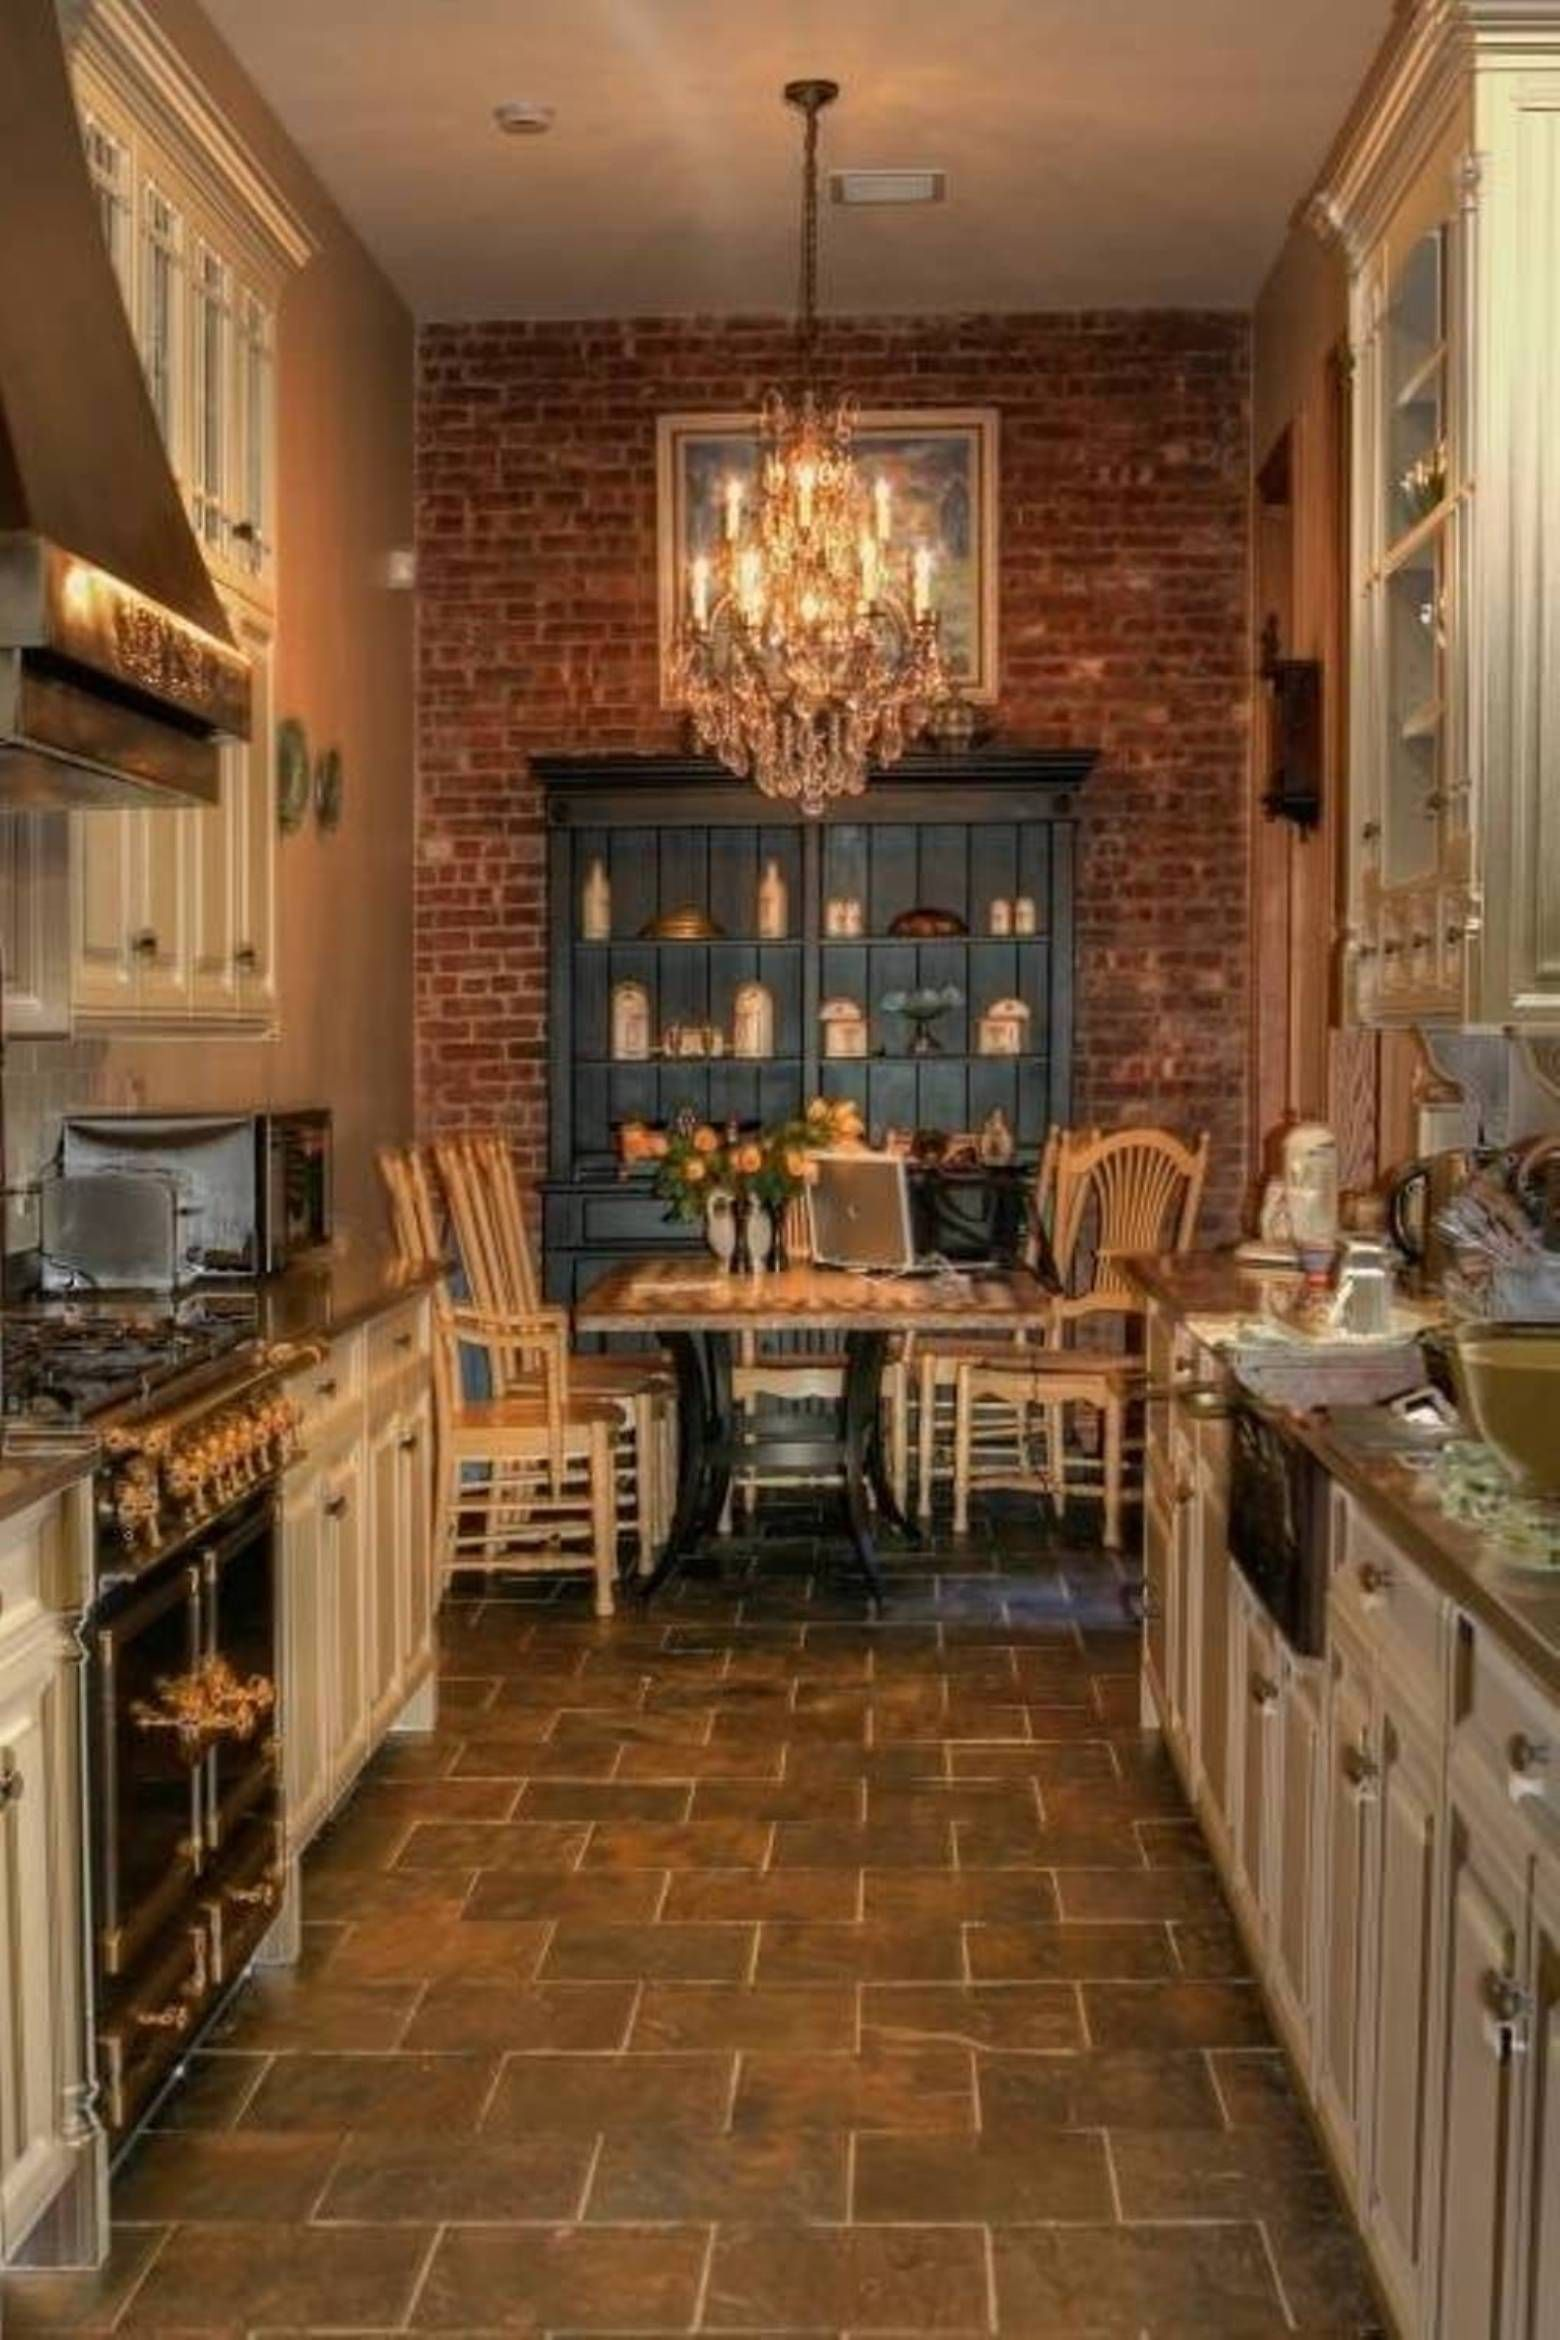 Love this kitchen rustic design galley kitchen floor plans floor ideas for galley kitchen floor plans better home and garden